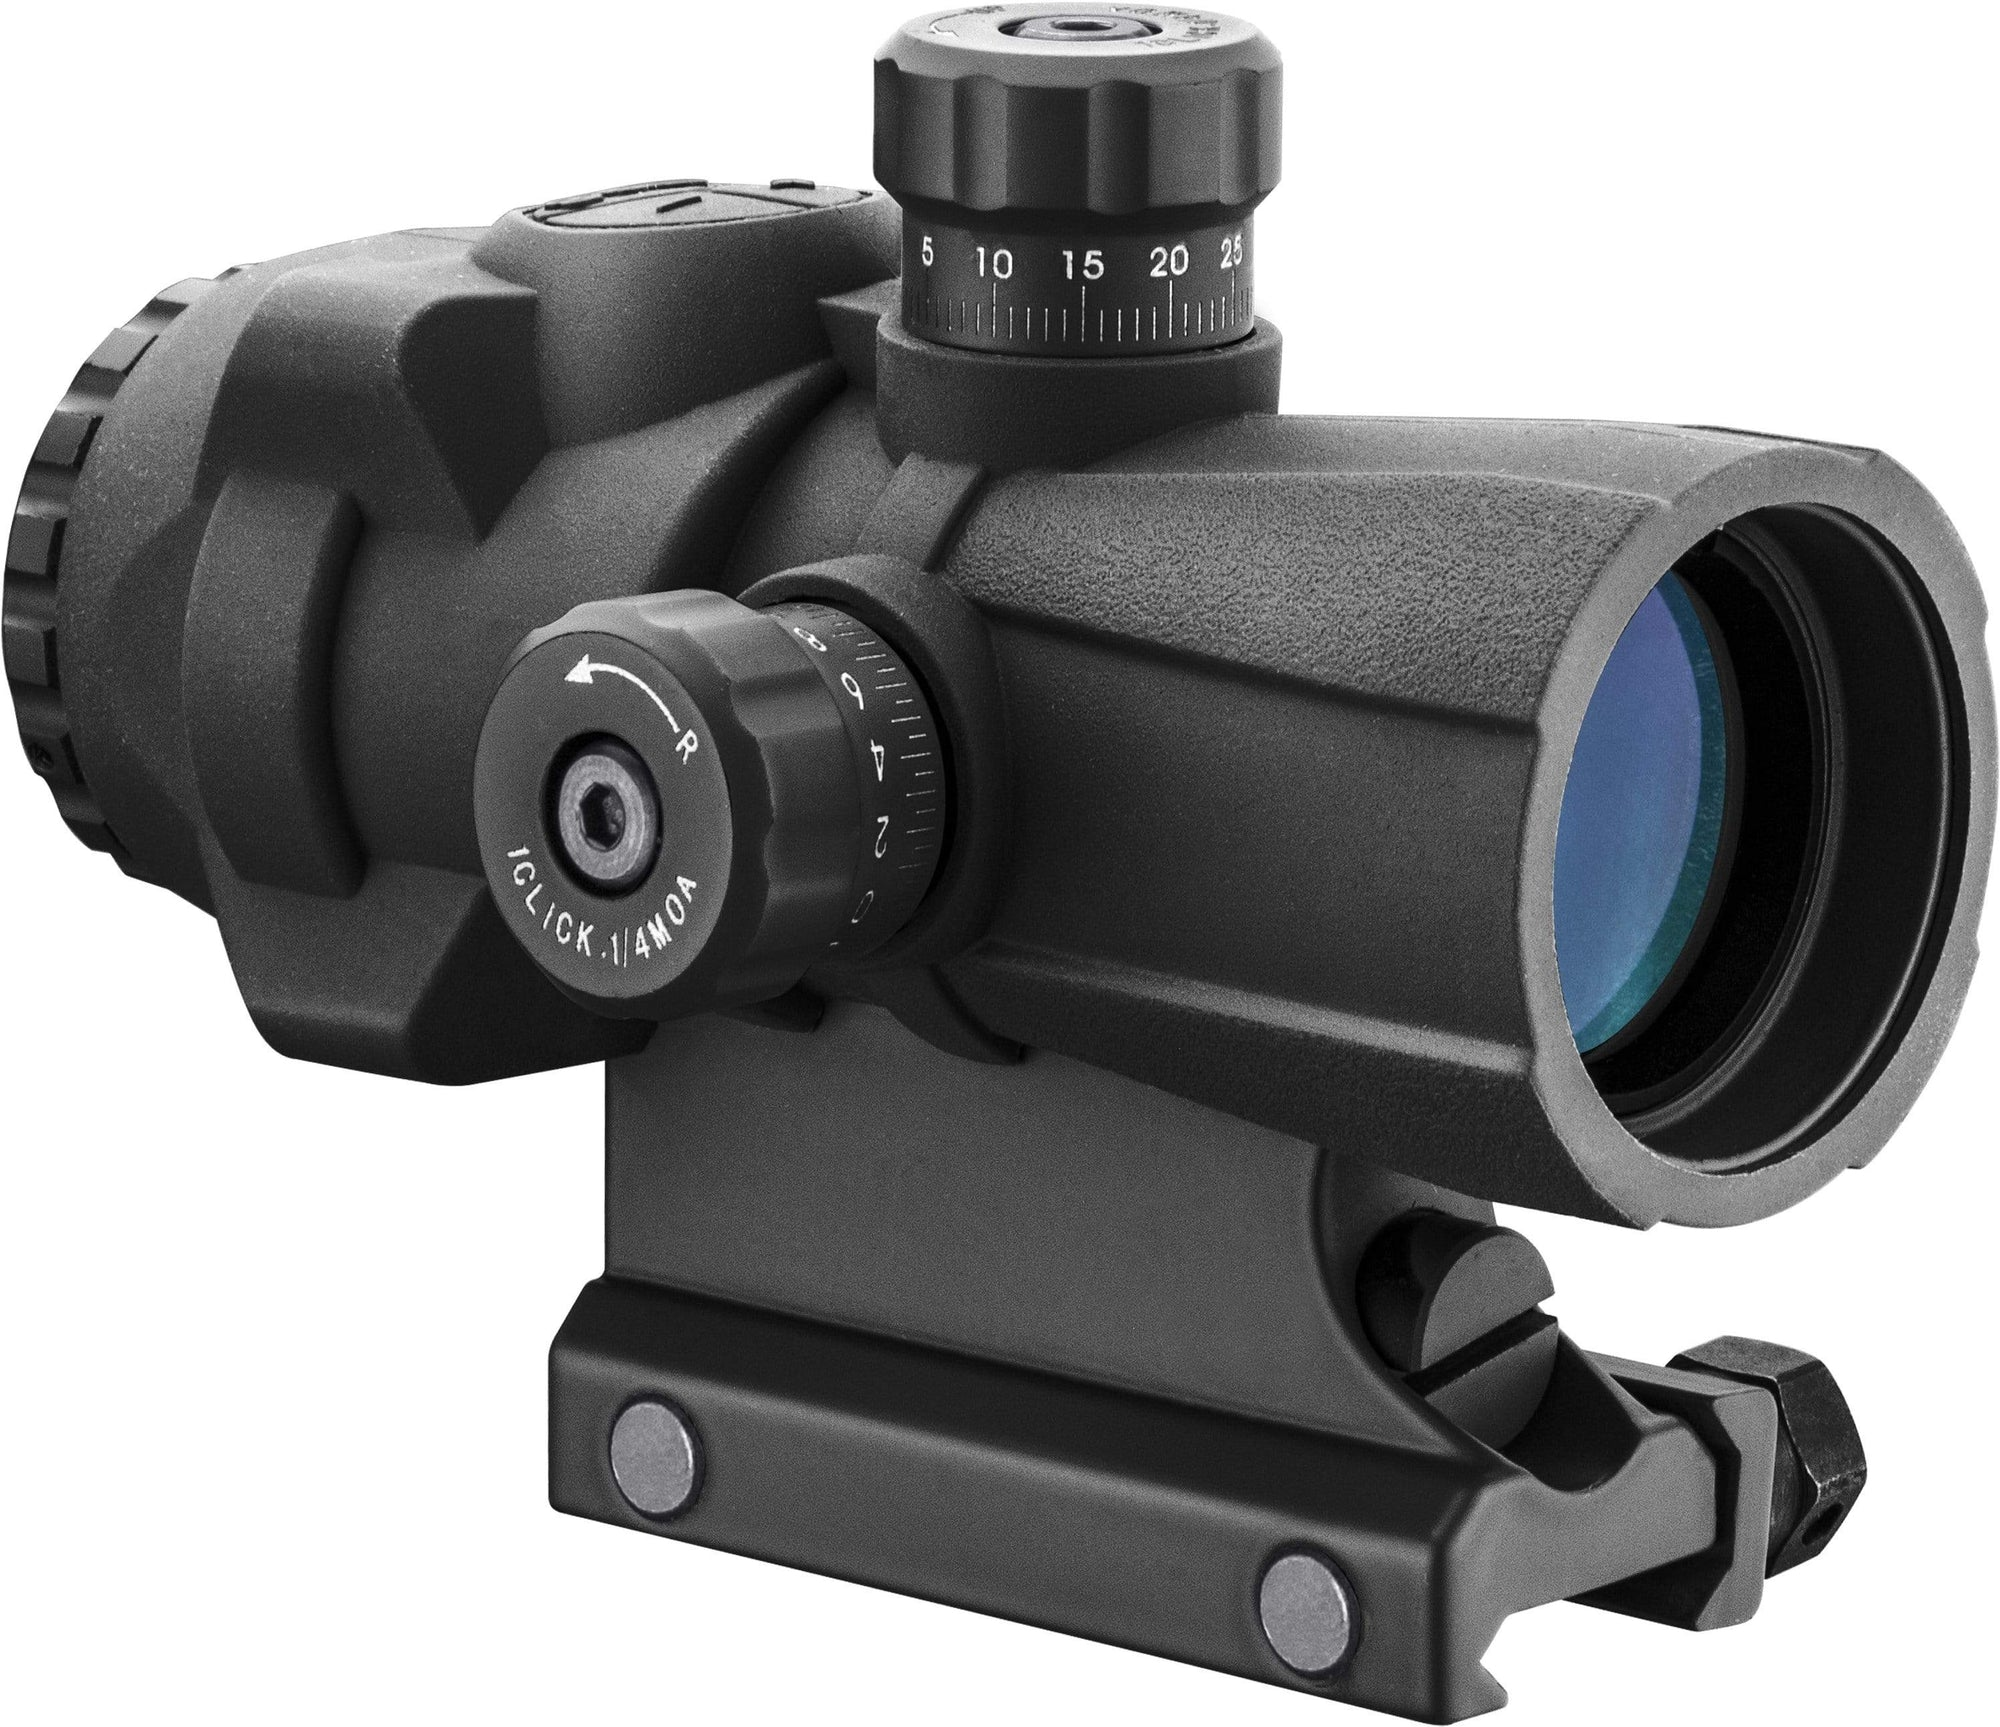 Barska 3 x 30mm AR-X PRO Prism Scope (Black) Armadillo Safe and Vault